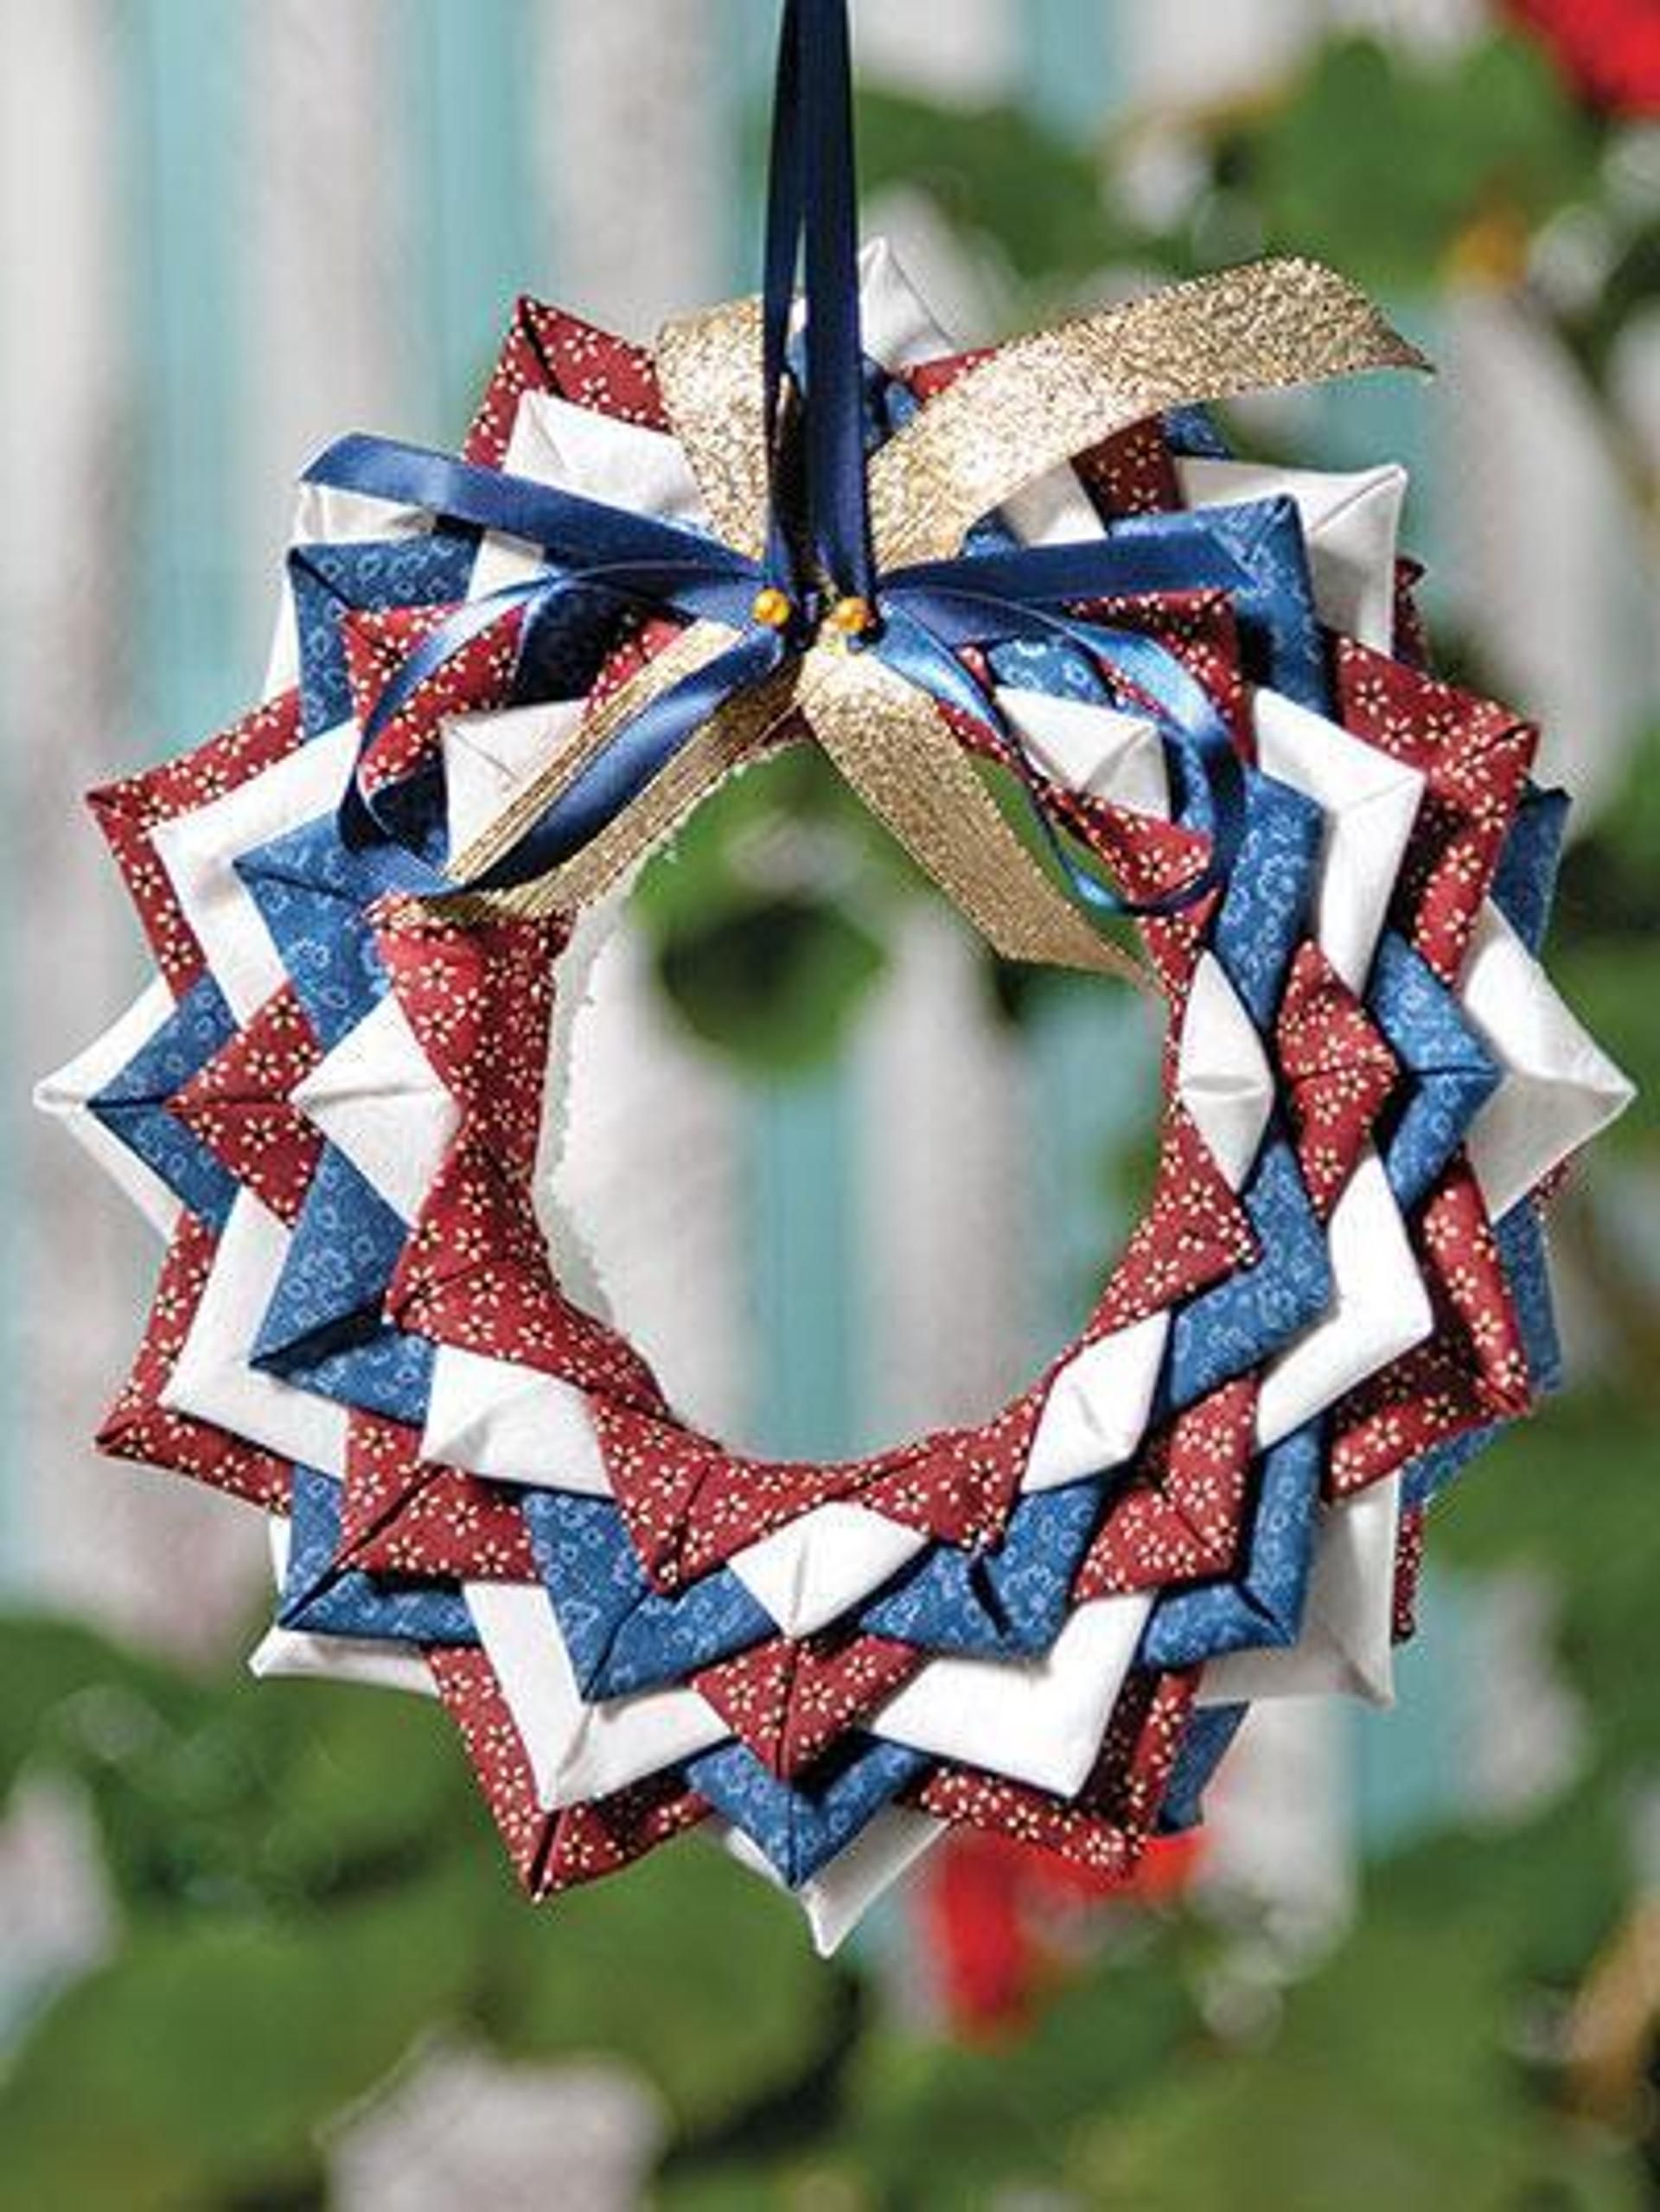 No Sew Folded Fabric Wreath Ornament Pattern Craftsy Quilted Christmas Ornaments Fabric Christmas Ornaments Holiday Ornaments